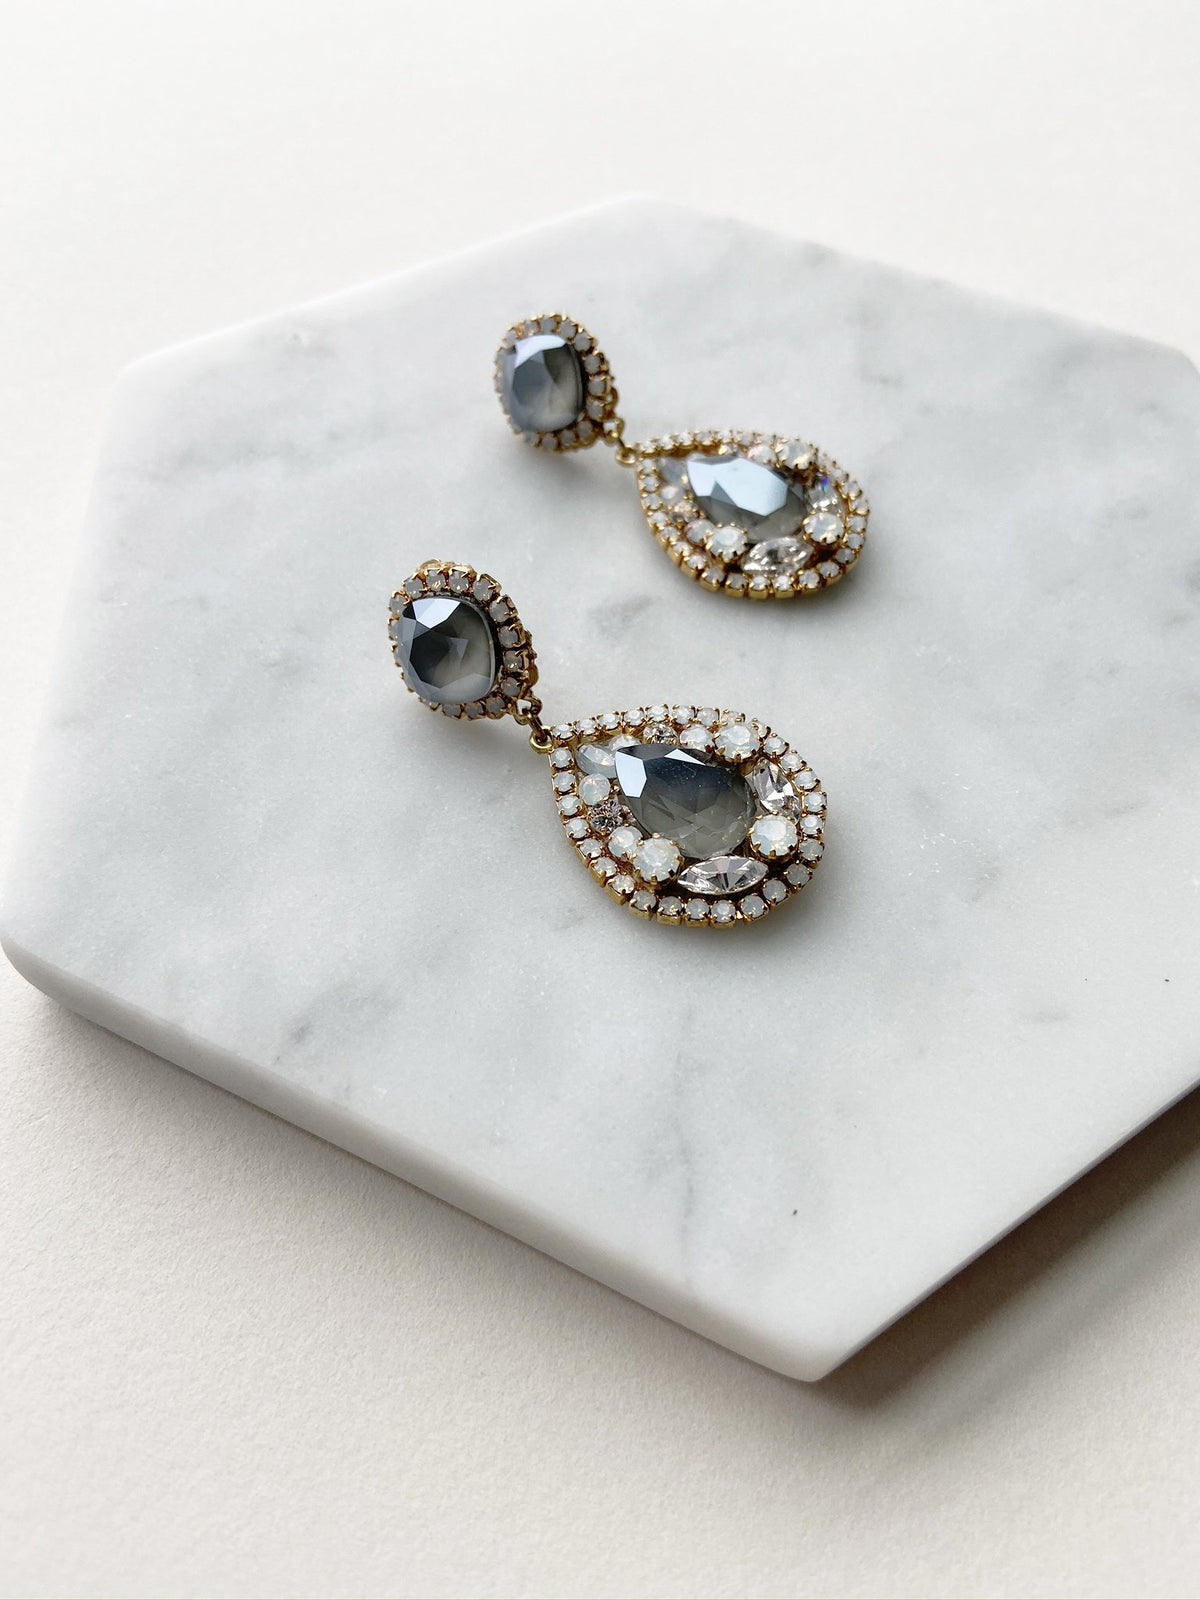 Rent Wedding Jewelry - Something Blue Earrings - Happily Ever Borrowed